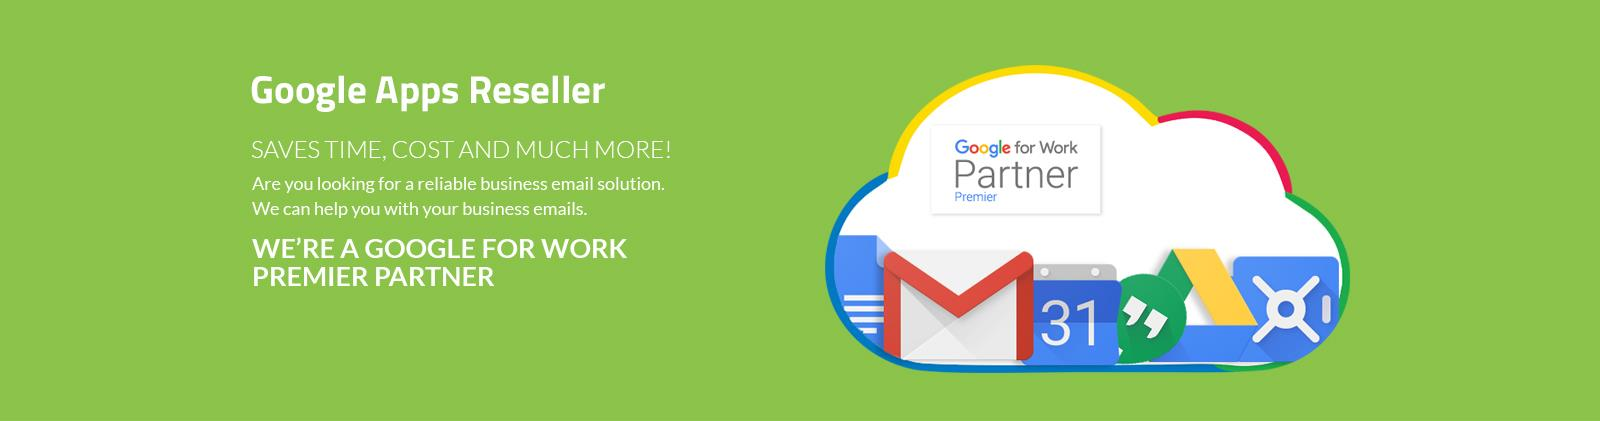 Google For Work, the organization gets more customized email addresses, calendar, Mobile email and IM access. No additional software or hardware is required to access it. It's default spam filtering is considered to be the leading filter in the whole industry. 99.9% uptime is guaranteed in Google For Work with 24/7 email and phone support. It's setup is available for small businesses, education, government and also non-profit organizations....for more information visit our site....http://theplanetapps.in/ - by 300 OFF! Google Apps for Work Partner +91 7503131644, Delhi